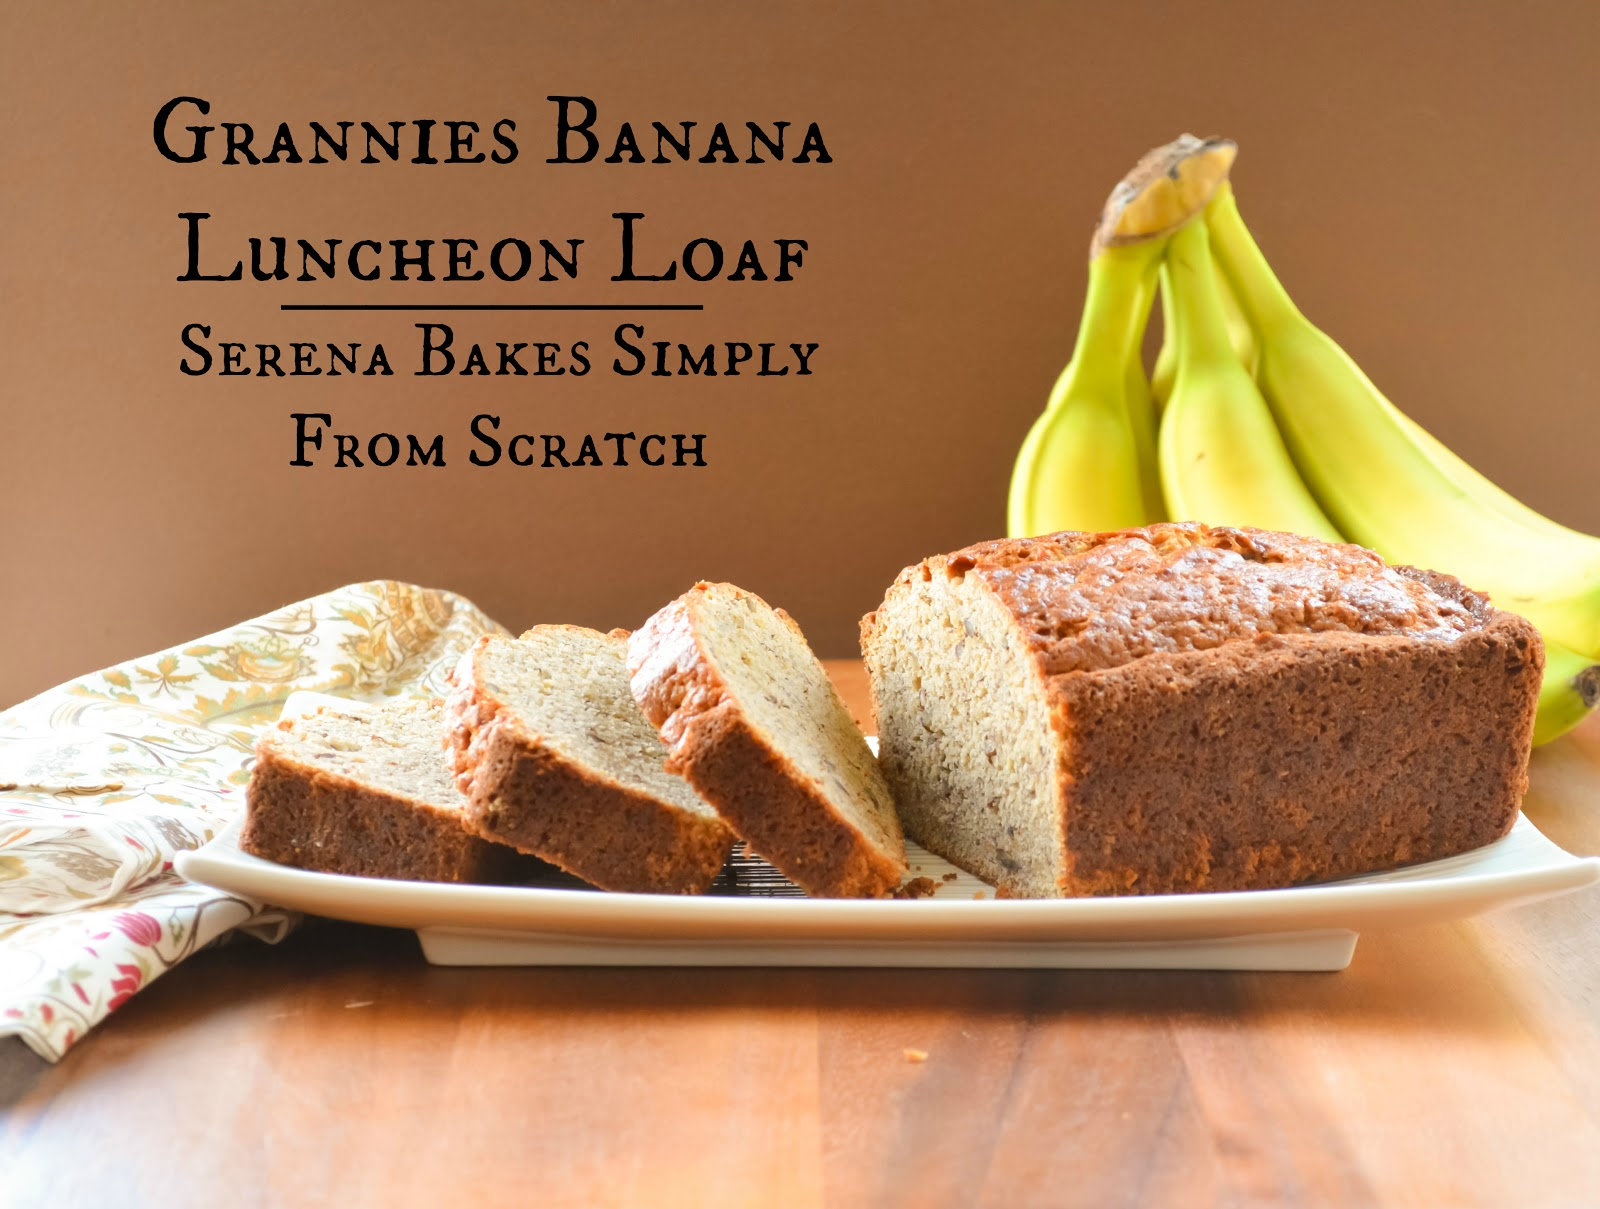 Grannies Banana Luncheon Loaf